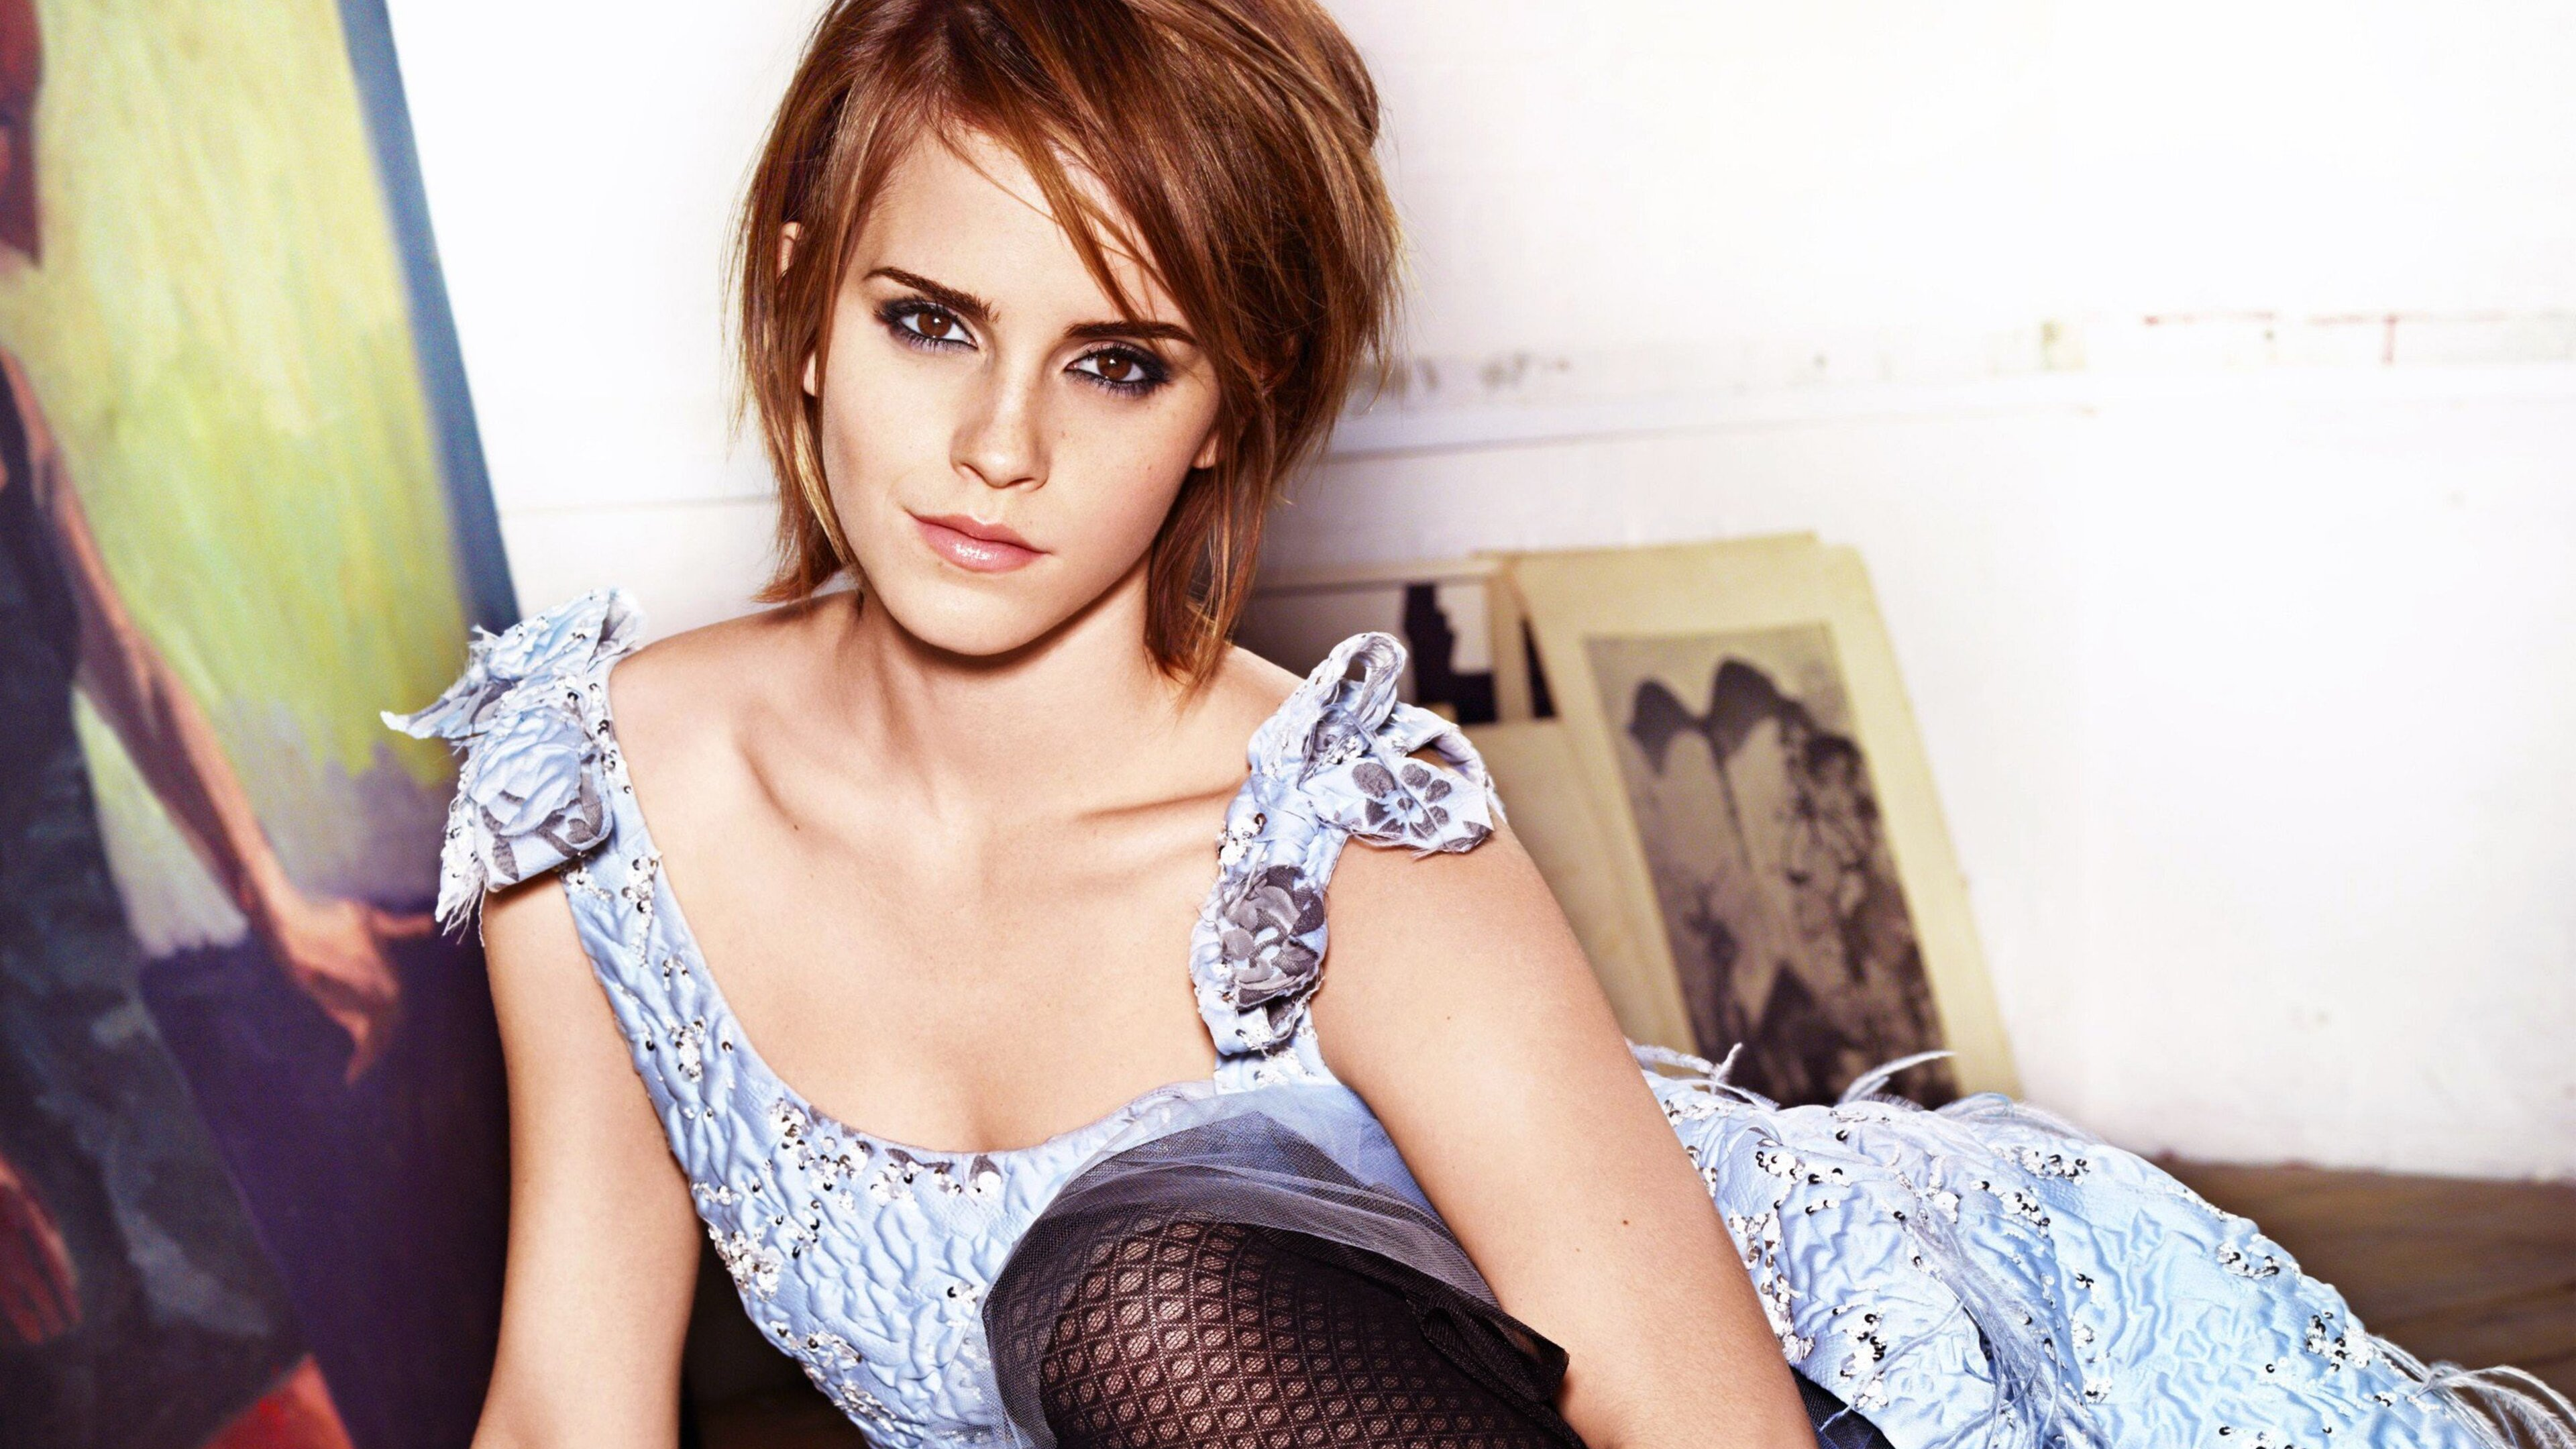 3840x2160 emma watson hot 4k hd 4k wallpapers images - Emma watson wallpaper free download ...